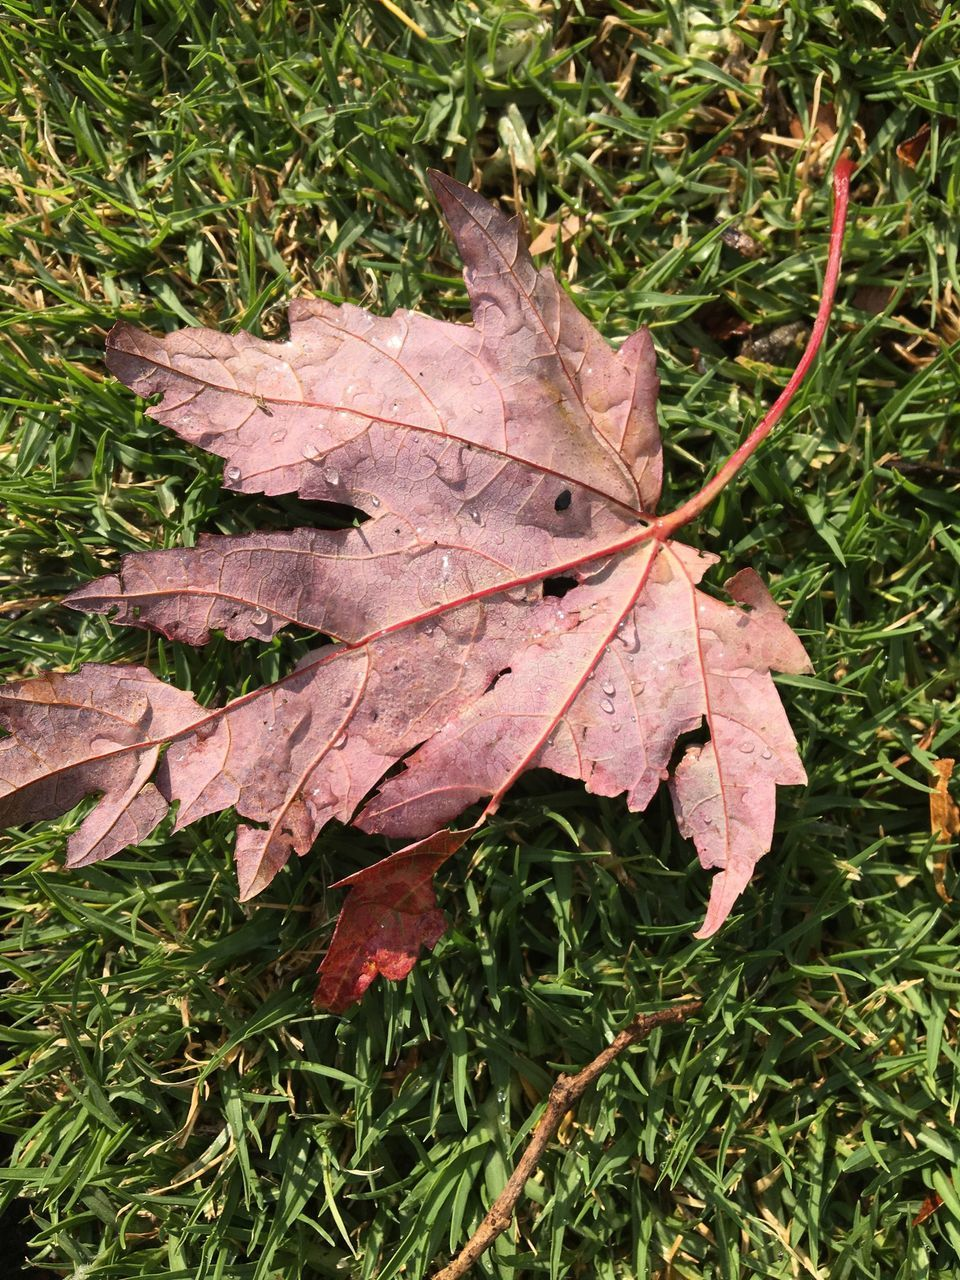 leaf, autumn, change, dry, leaves, nature, maple, day, fallen, outdoors, maple leaf, high angle view, no people, grass, close-up, beauty in nature, fragility, water